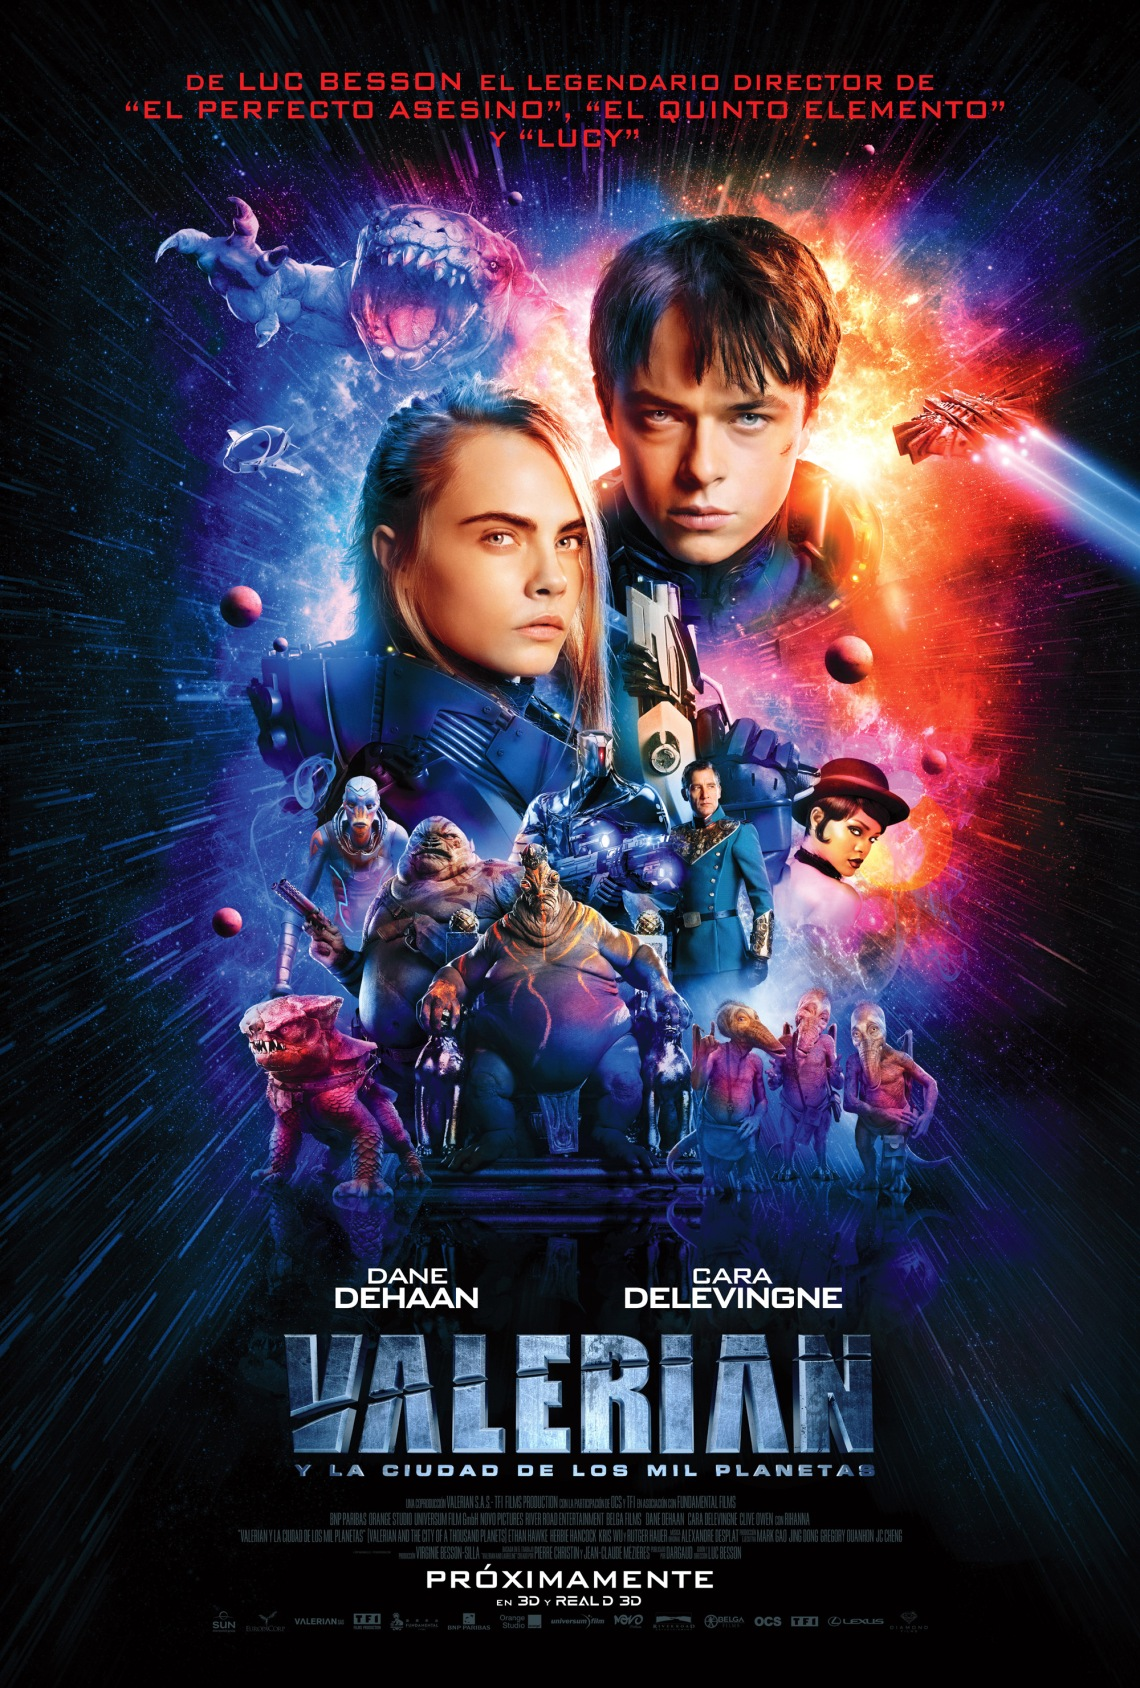 valerian-and-the-city-of-a-thousand-planets-nuevo-poster1.jpg